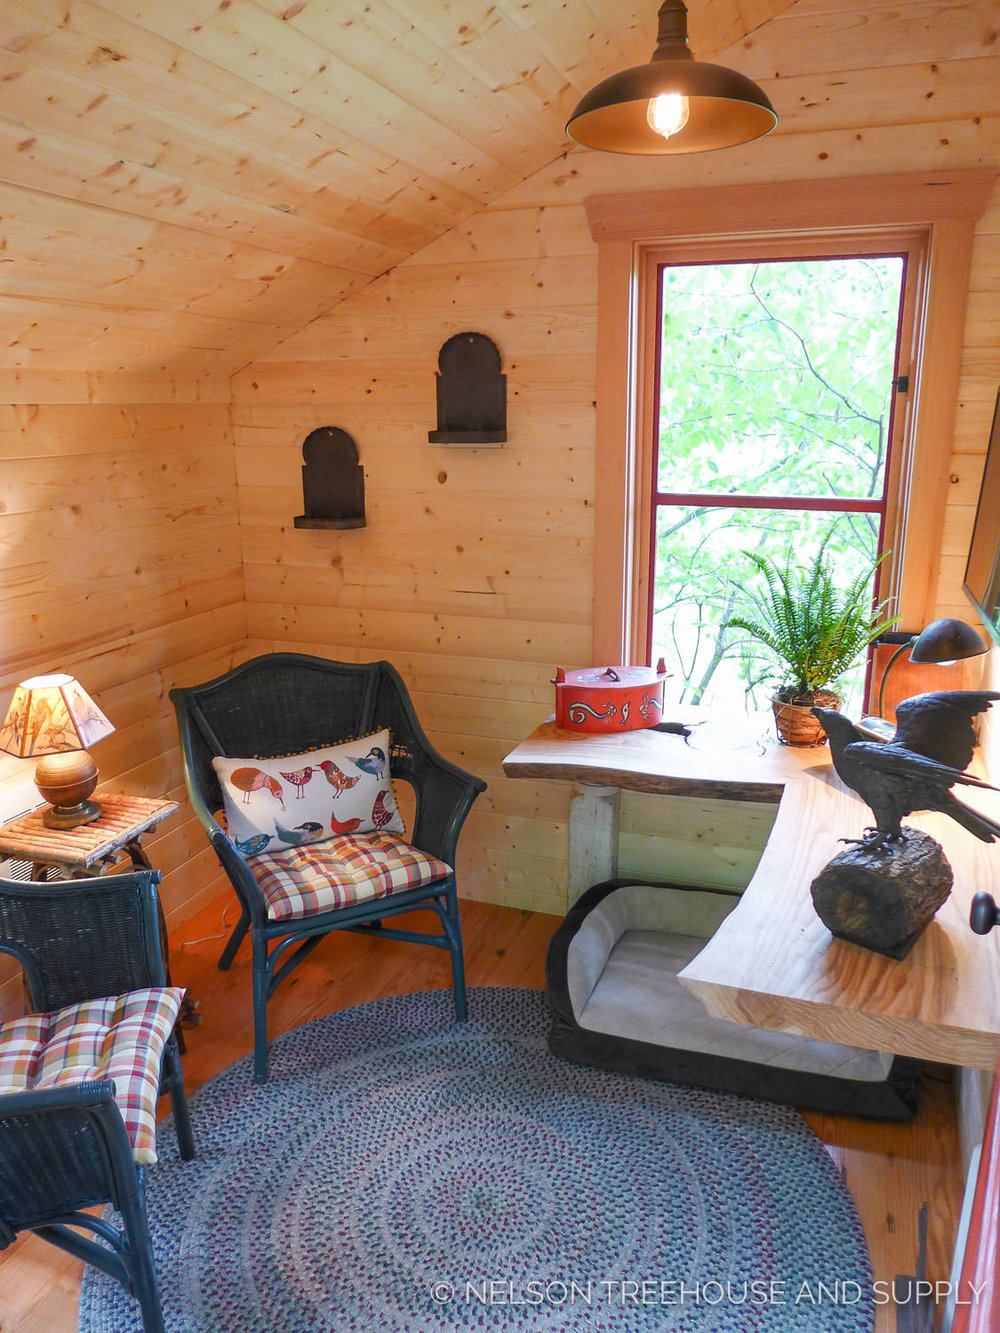 desoto_wi_2017 20jpg - Treehouse Masters Interior